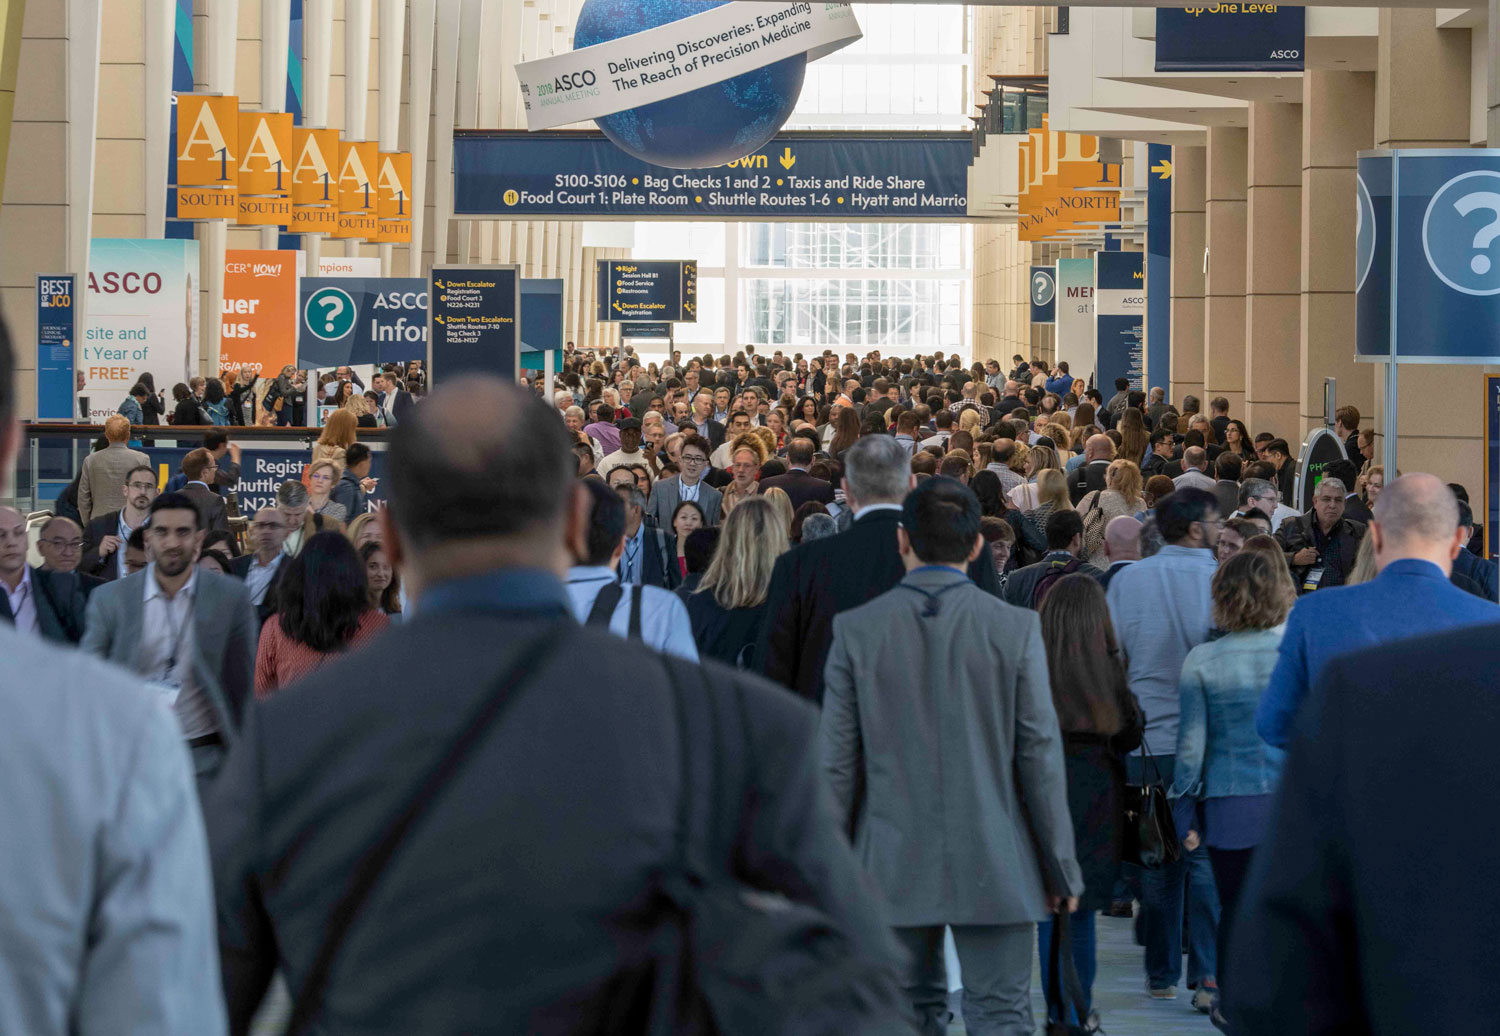 People heading towards sessions at ASCO 2018